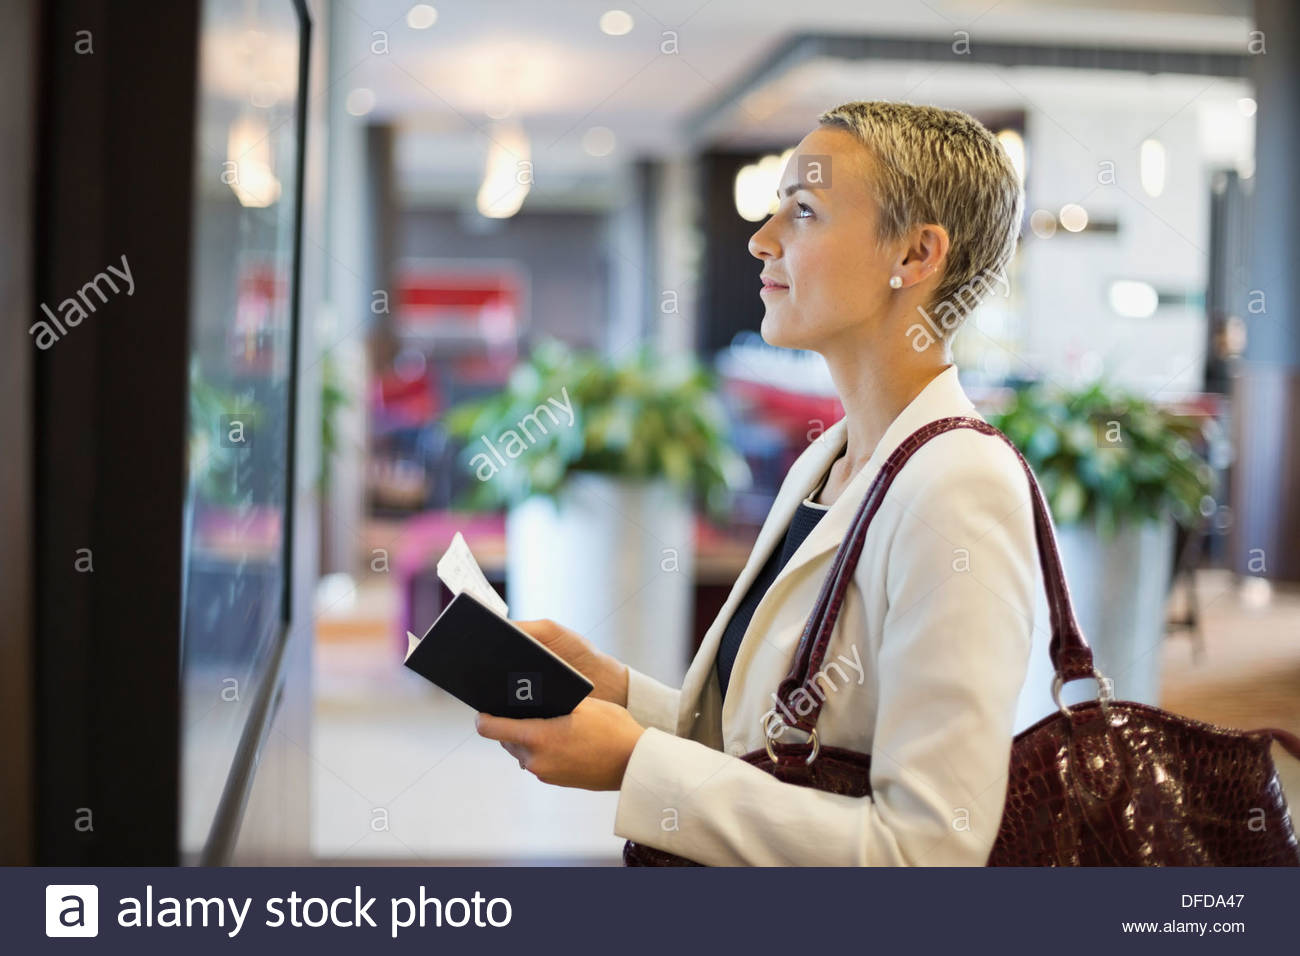 Businesswoman checking schedule at airport terminal - Stock Image